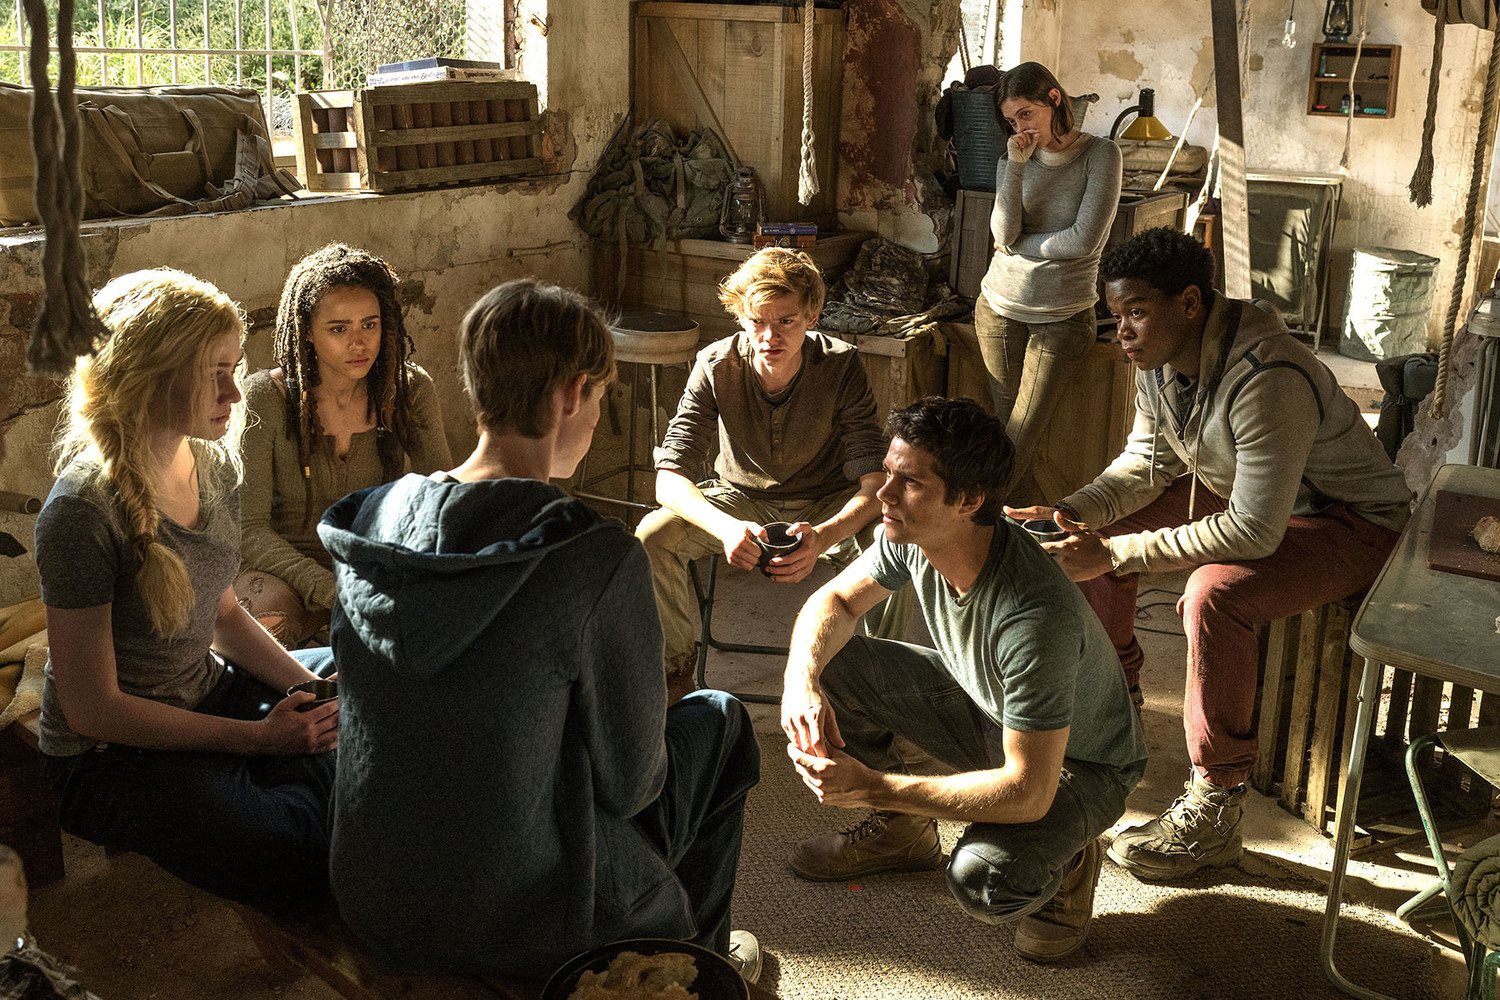 The group decides on their next move. (L-R) Sonya (Katherine McNamara), Harriet (Nathalie Emmanuel), Aris (Jacob Lofland, back to camera), Newt (Thomas Brodie-Sangster), Thomas (Dylan O'Brien), Brenda (Rosa Salazar), and Frypan (Dexter Darden) in Maze Runner: The Death Cure